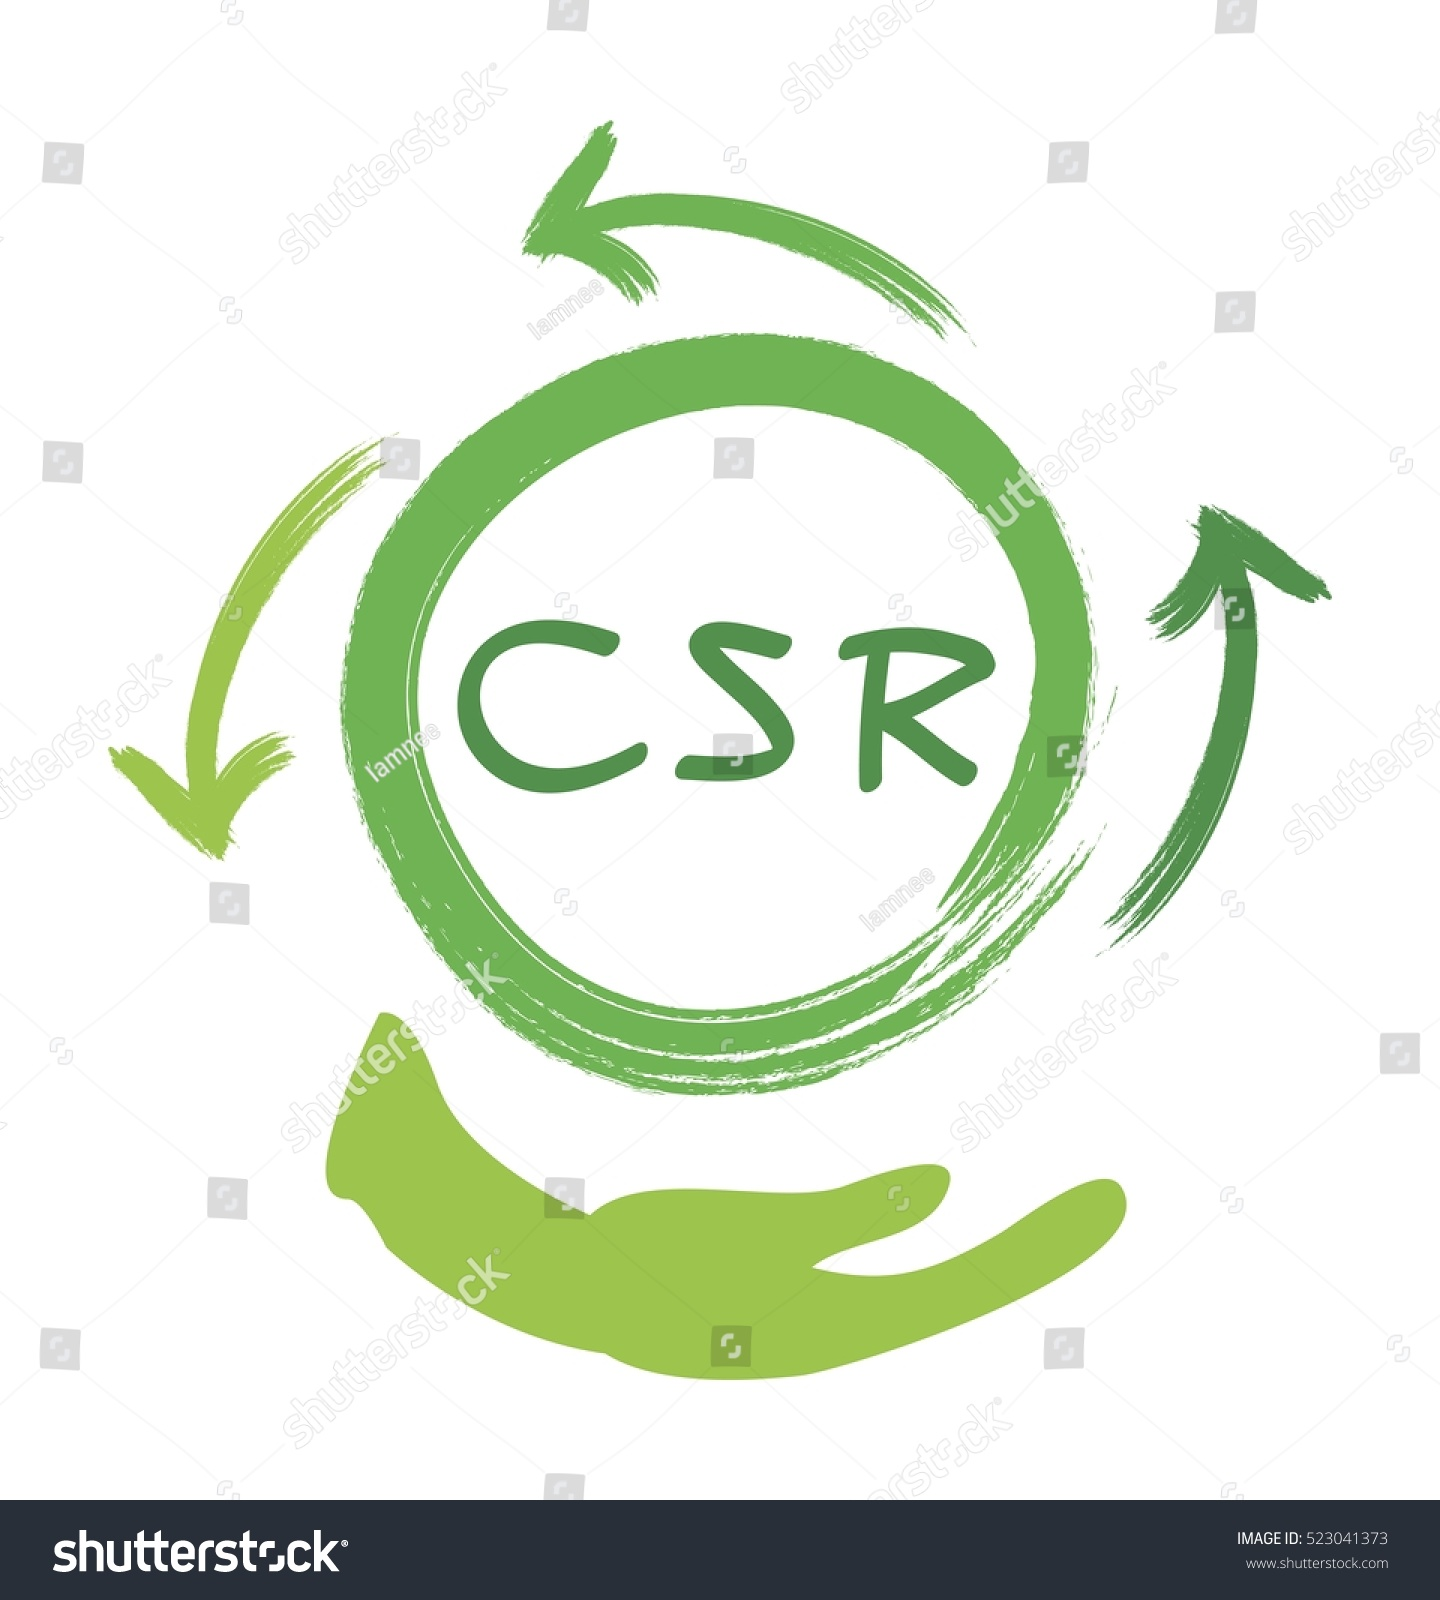 Business Concepts Recycle Icon Csr Abbreviation Stock Photo (Photo ...